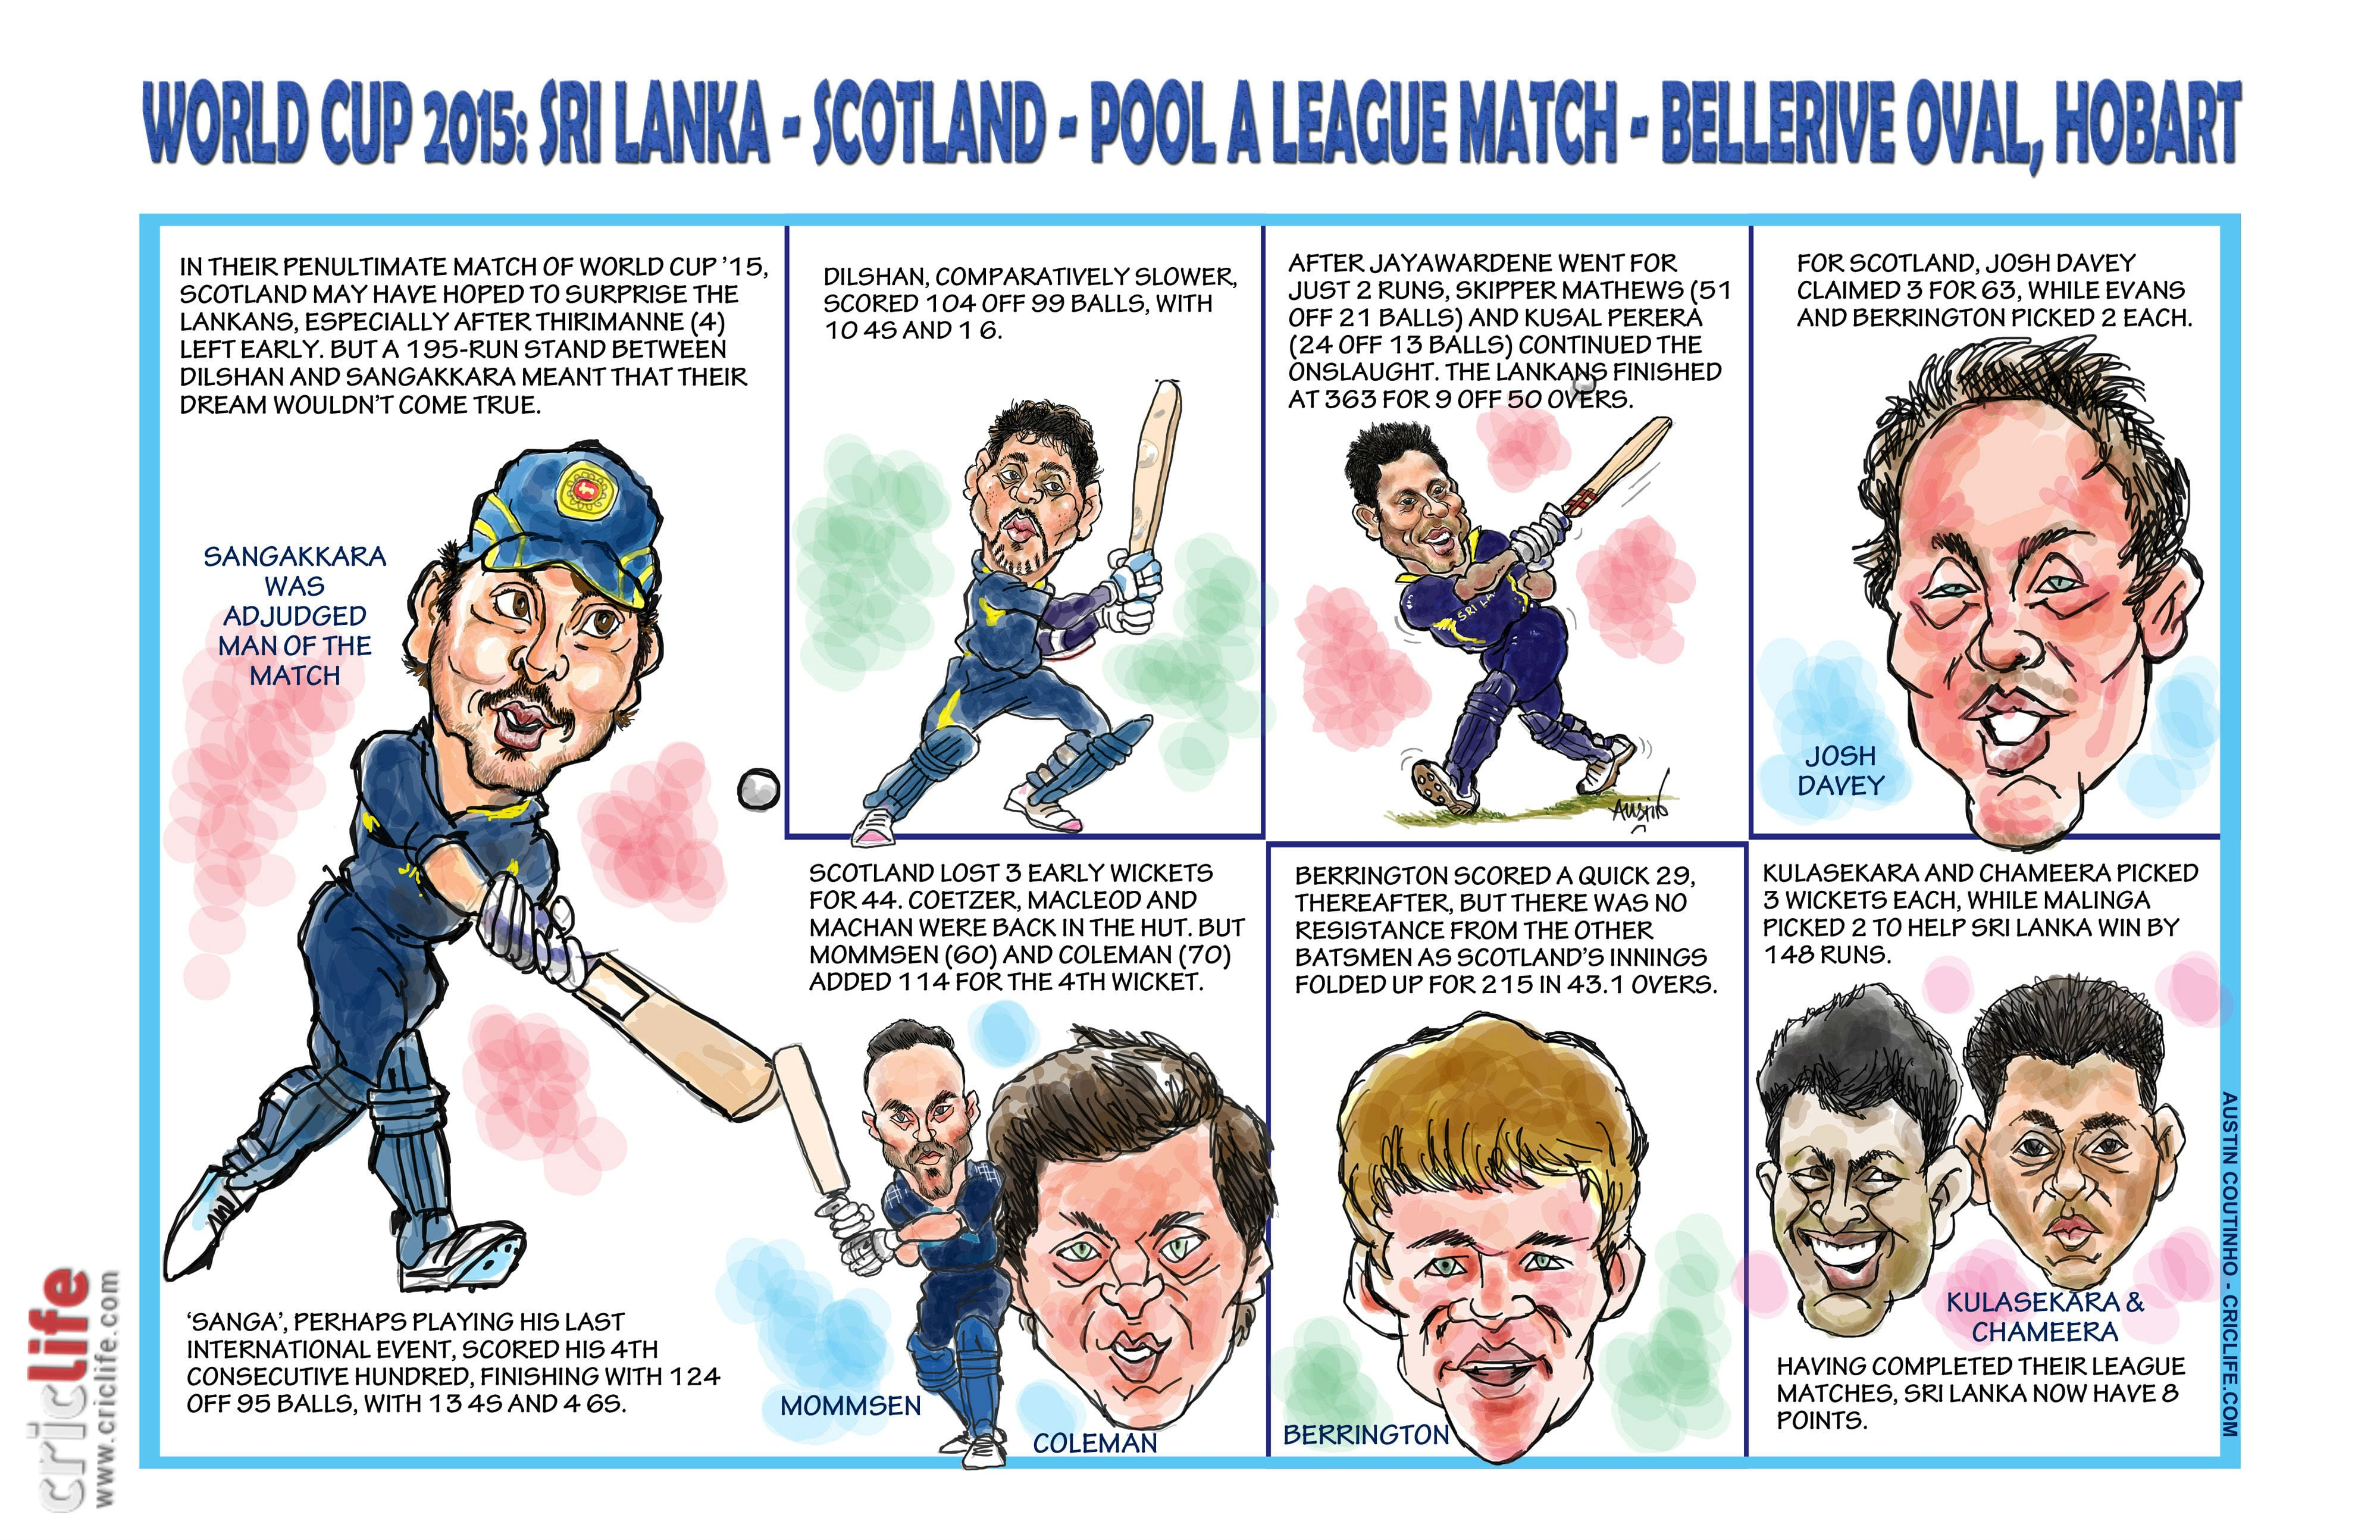 ICC Cricket World Cup 2015: Sri Lanka vs Scotland, Pool A match in Hobart in caricatures